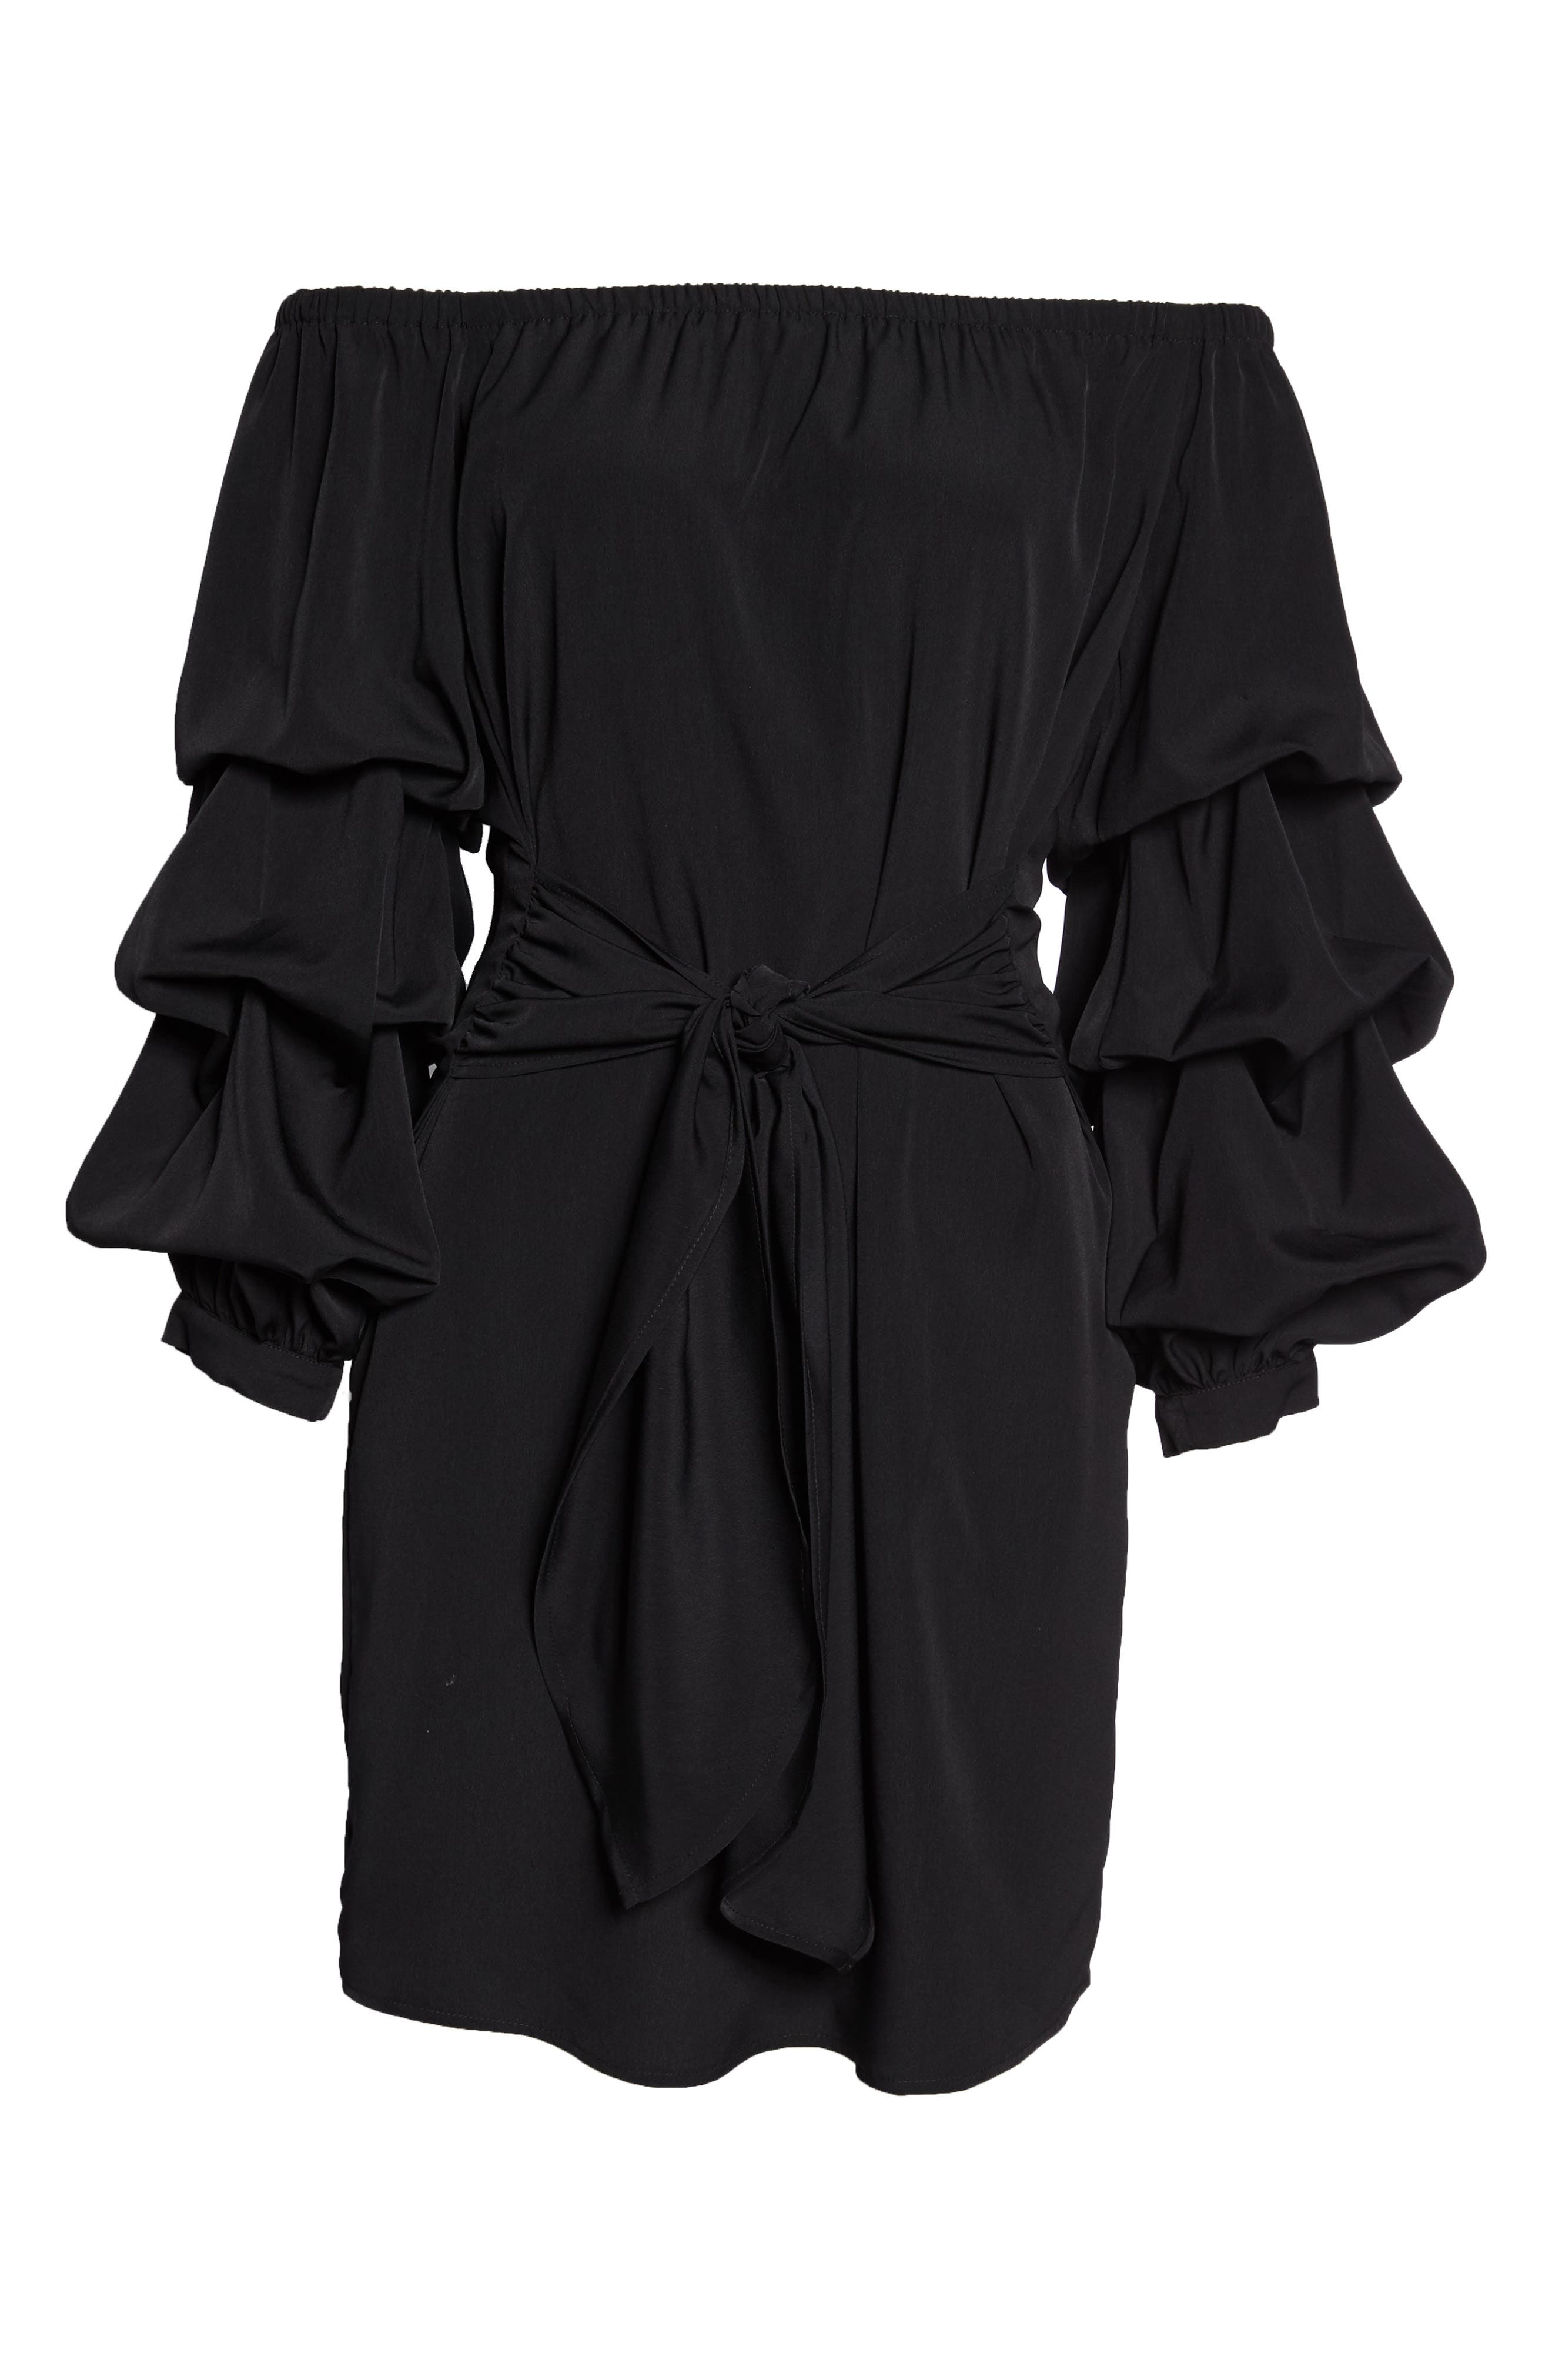 Off the Shoulder Tiered Sleeve Dress,                             Alternate thumbnail 7, color,                             002